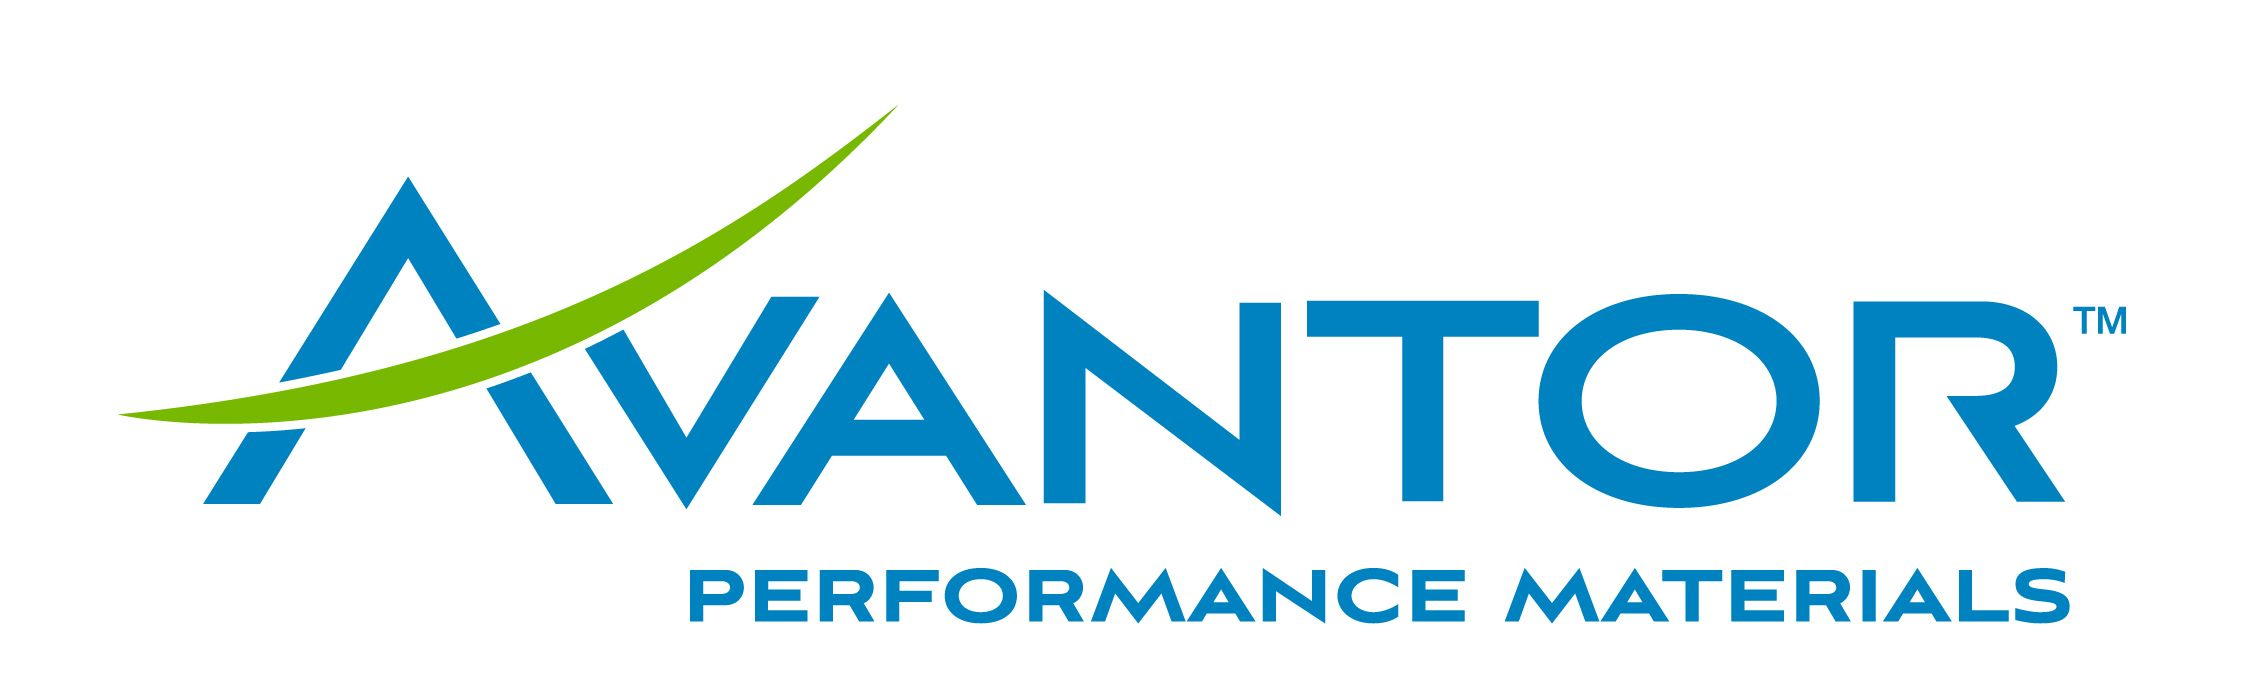 Jobs and Careers at Avantor Performance Materials>